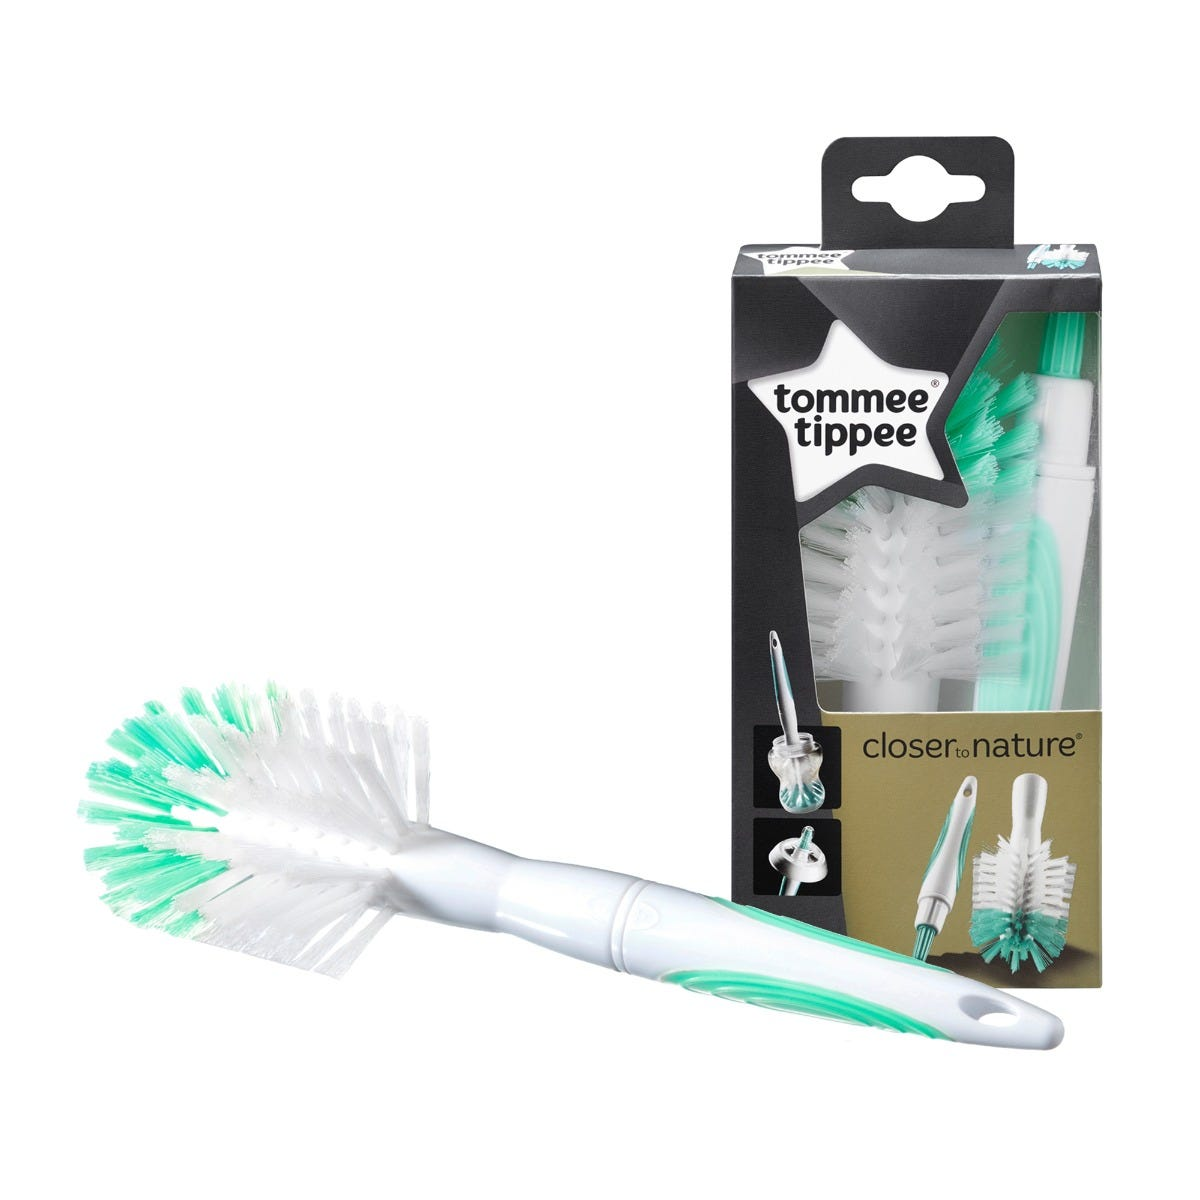 bottle-brush-next-to-packaging-box